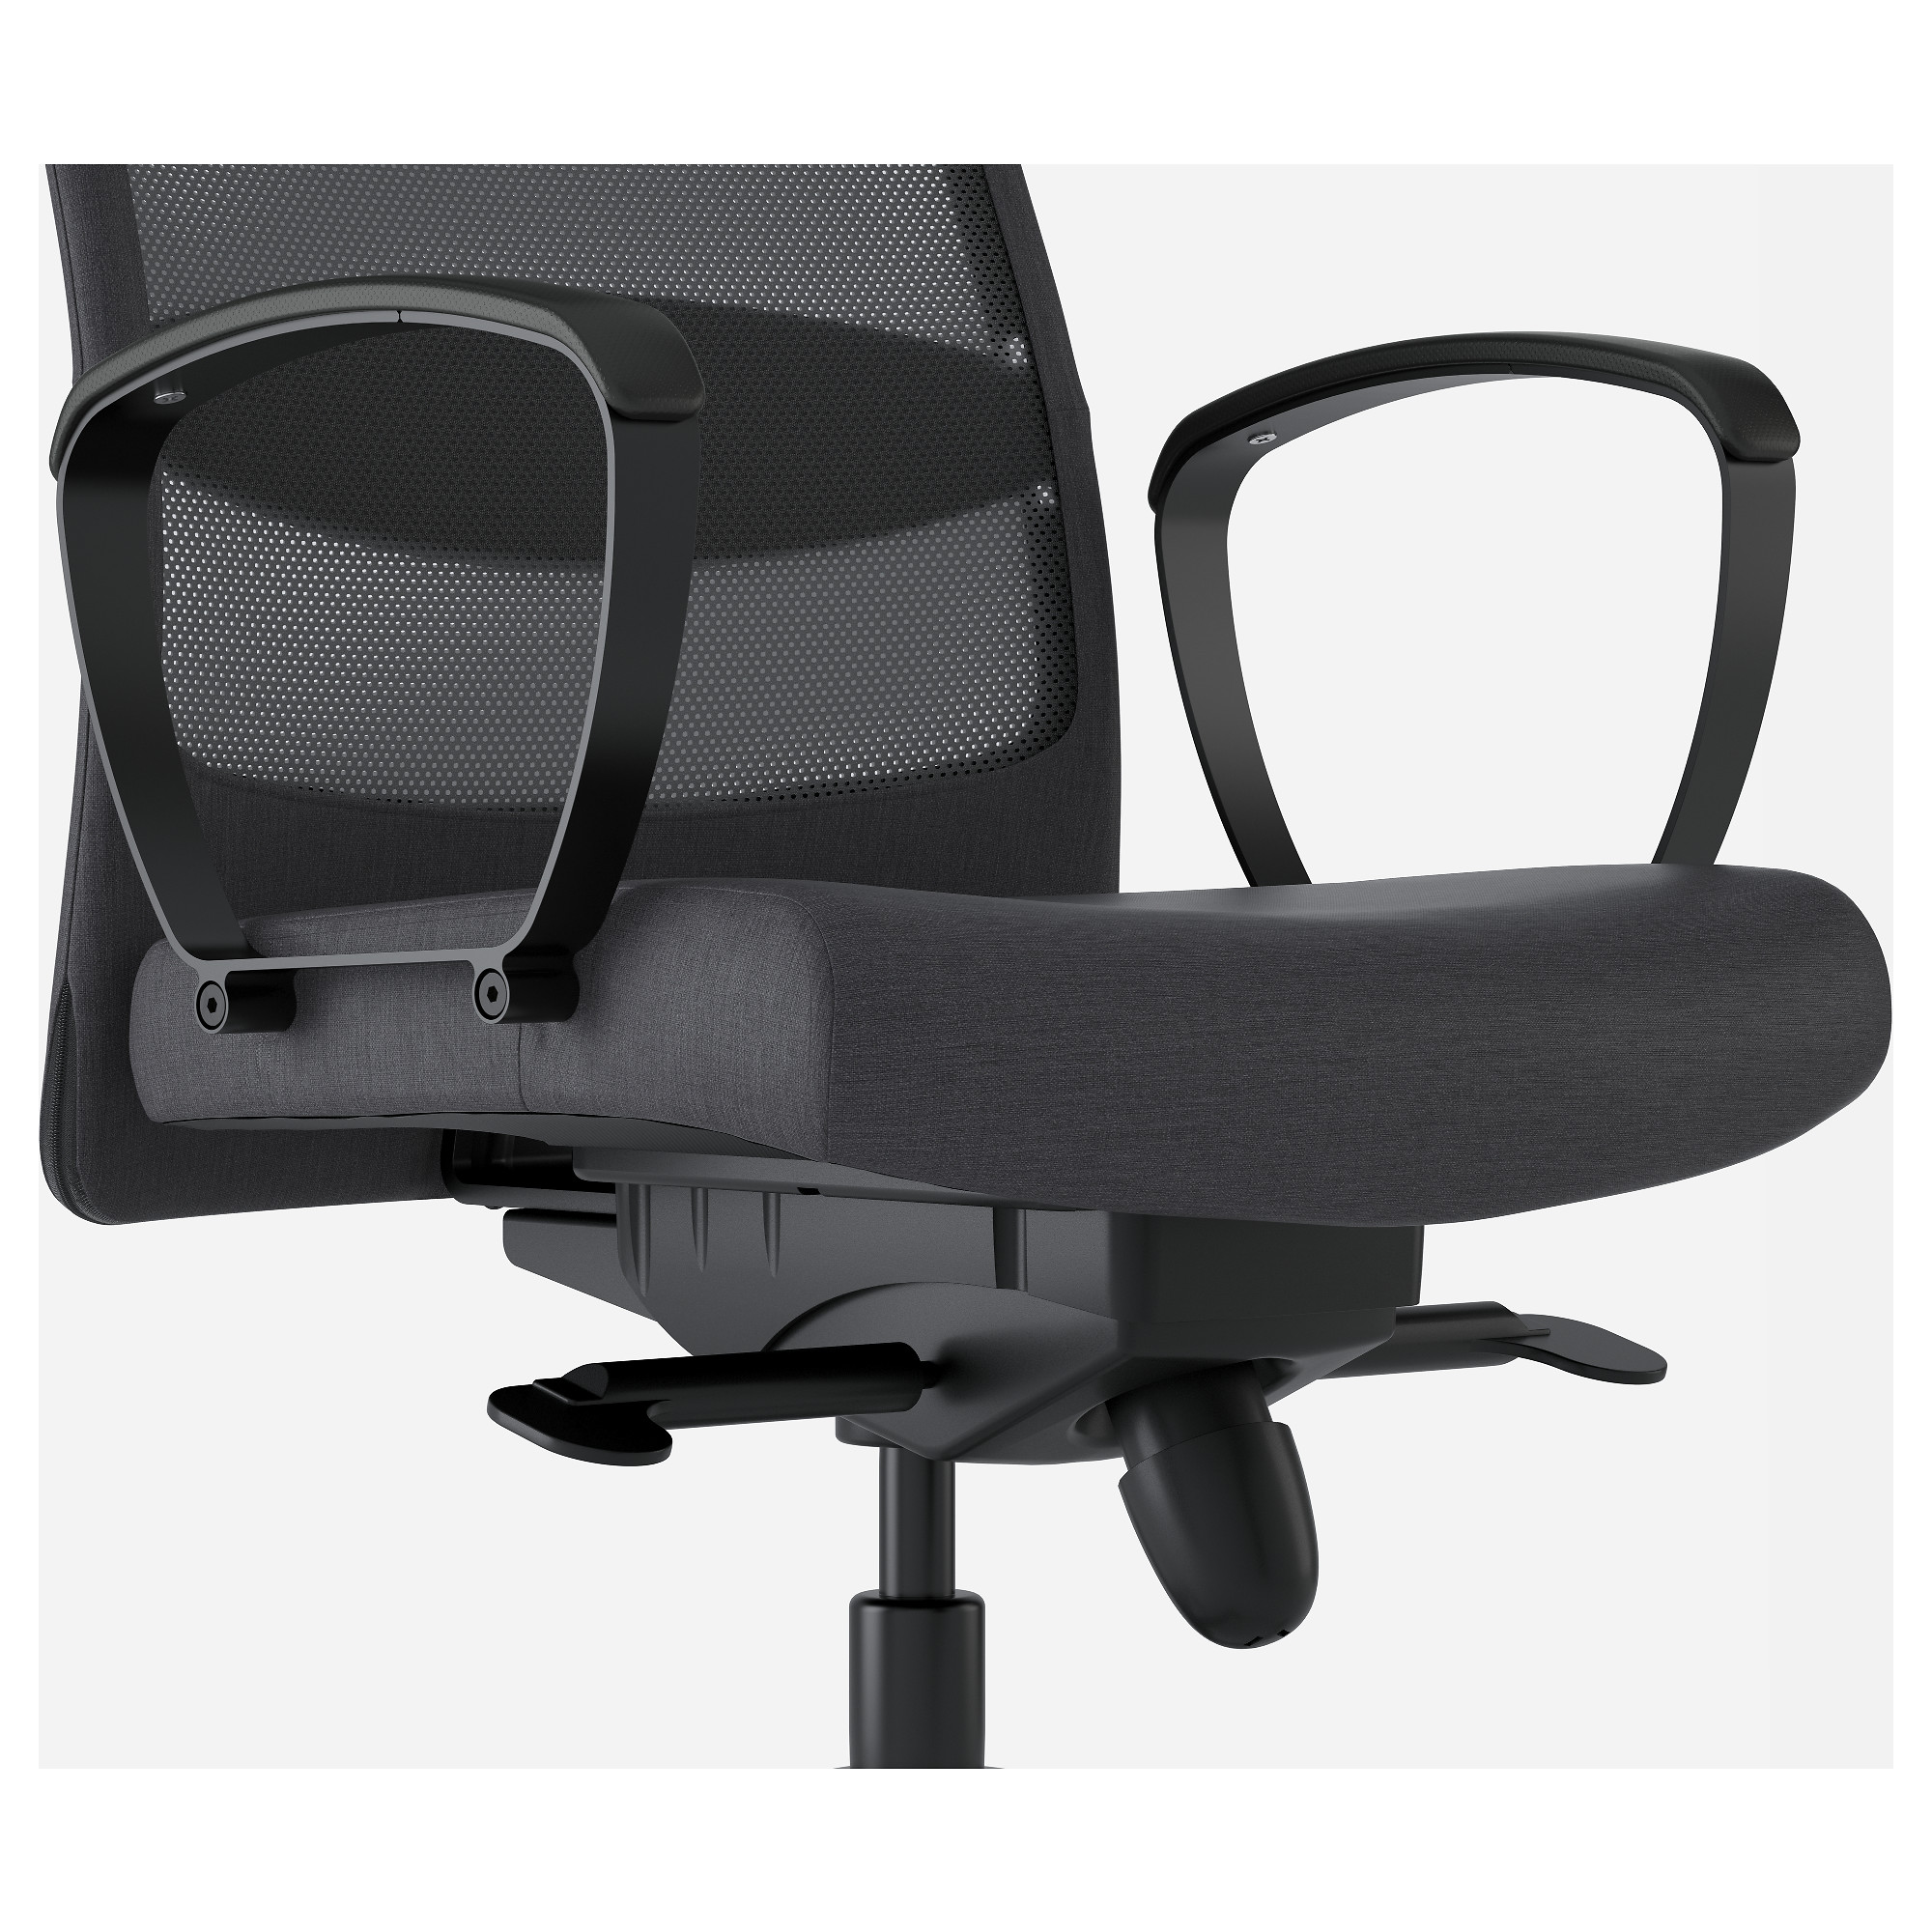 Surprising Markus Office Chair Vissle Dark Grey Ikea Hong Kong Caraccident5 Cool Chair Designs And Ideas Caraccident5Info